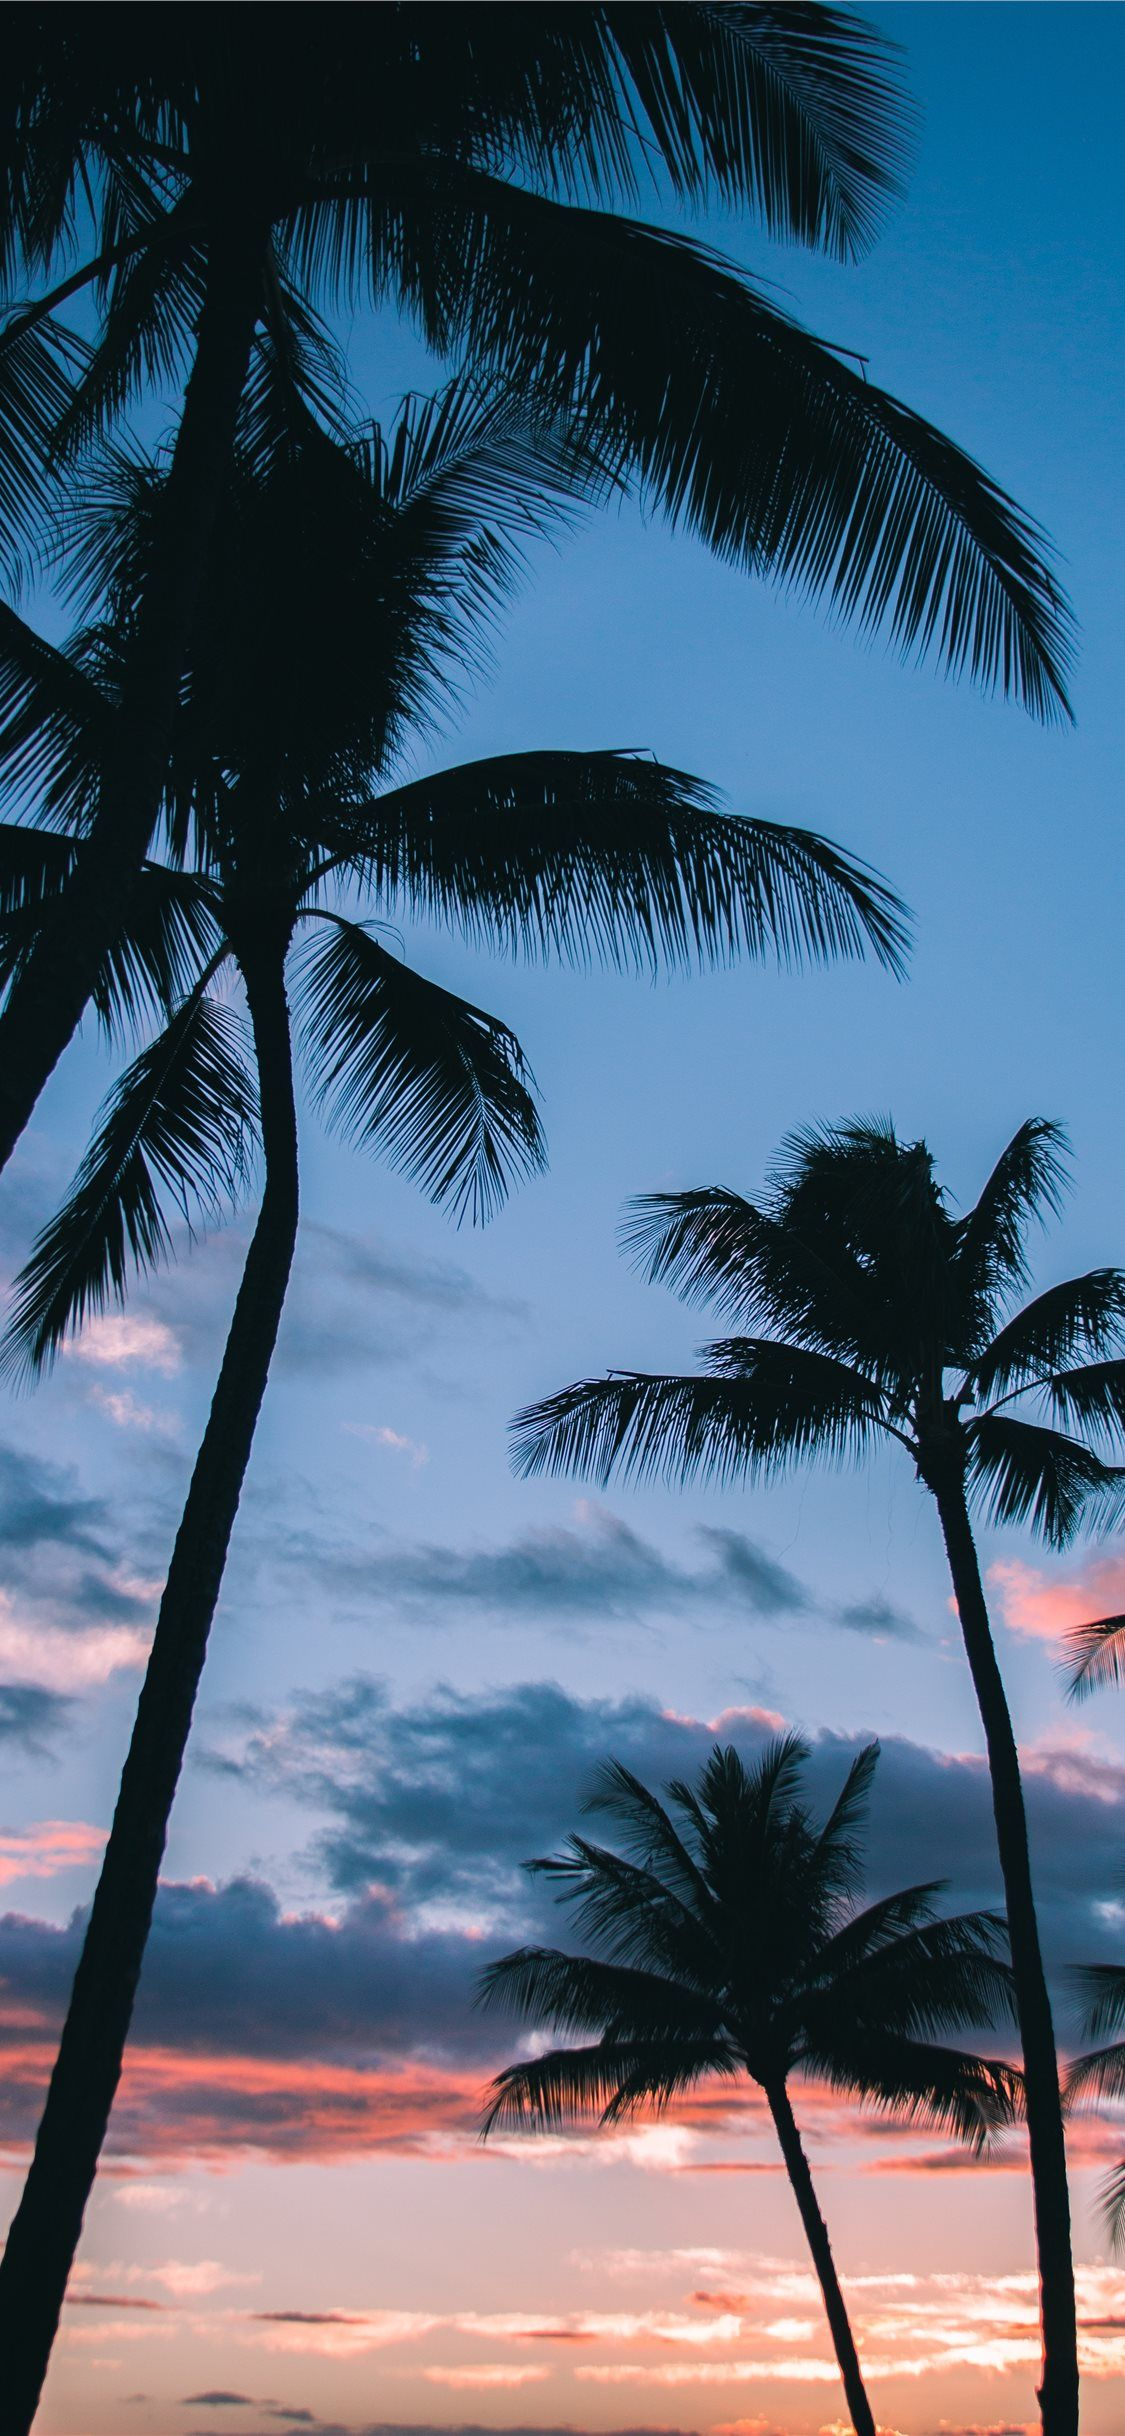 Aesthetic Palm Trees Wallpapers - Wallpaper Cave